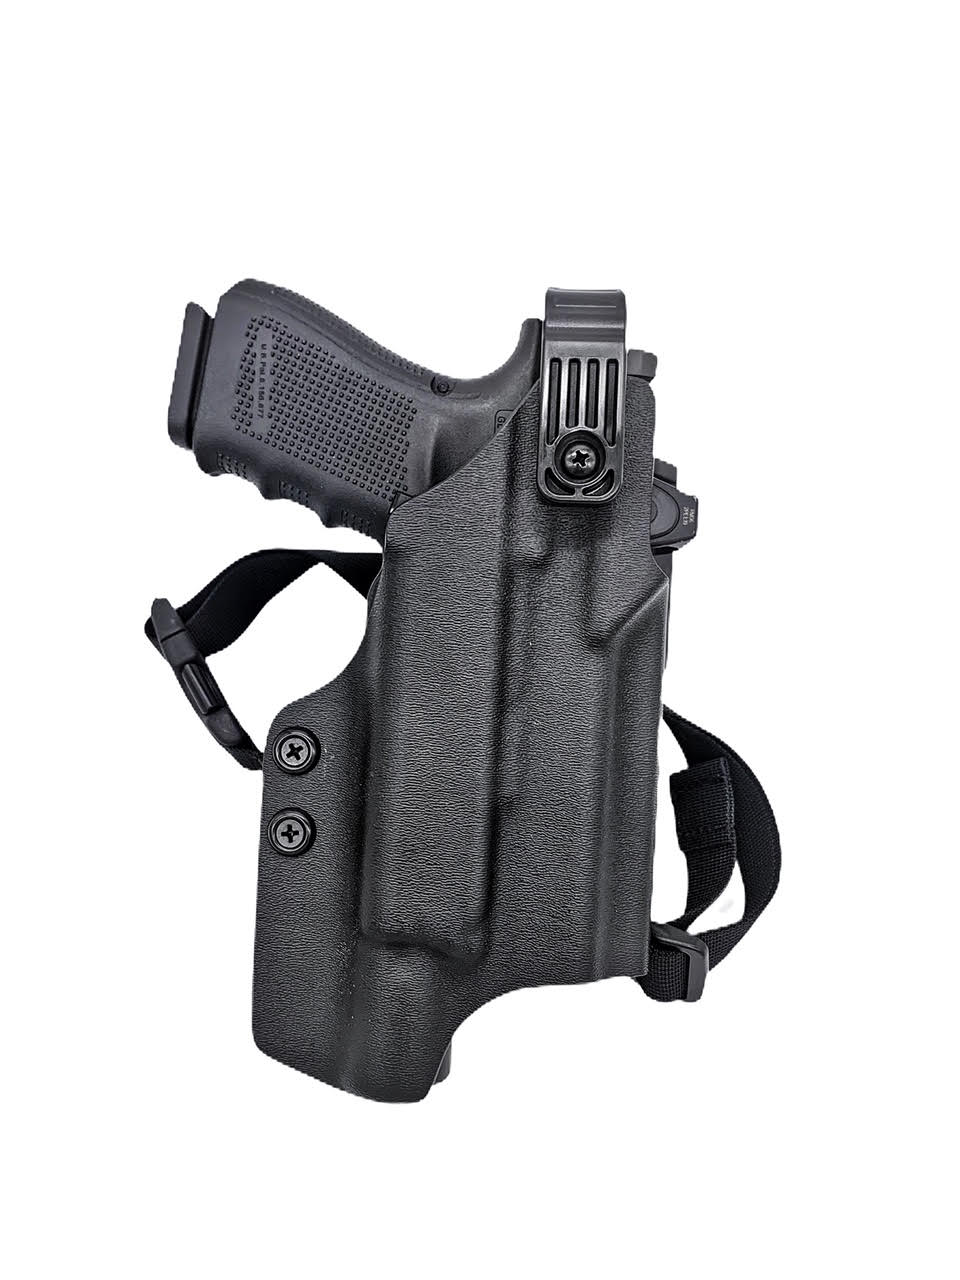 Level 2 Retention Holster for Light bearing Gun